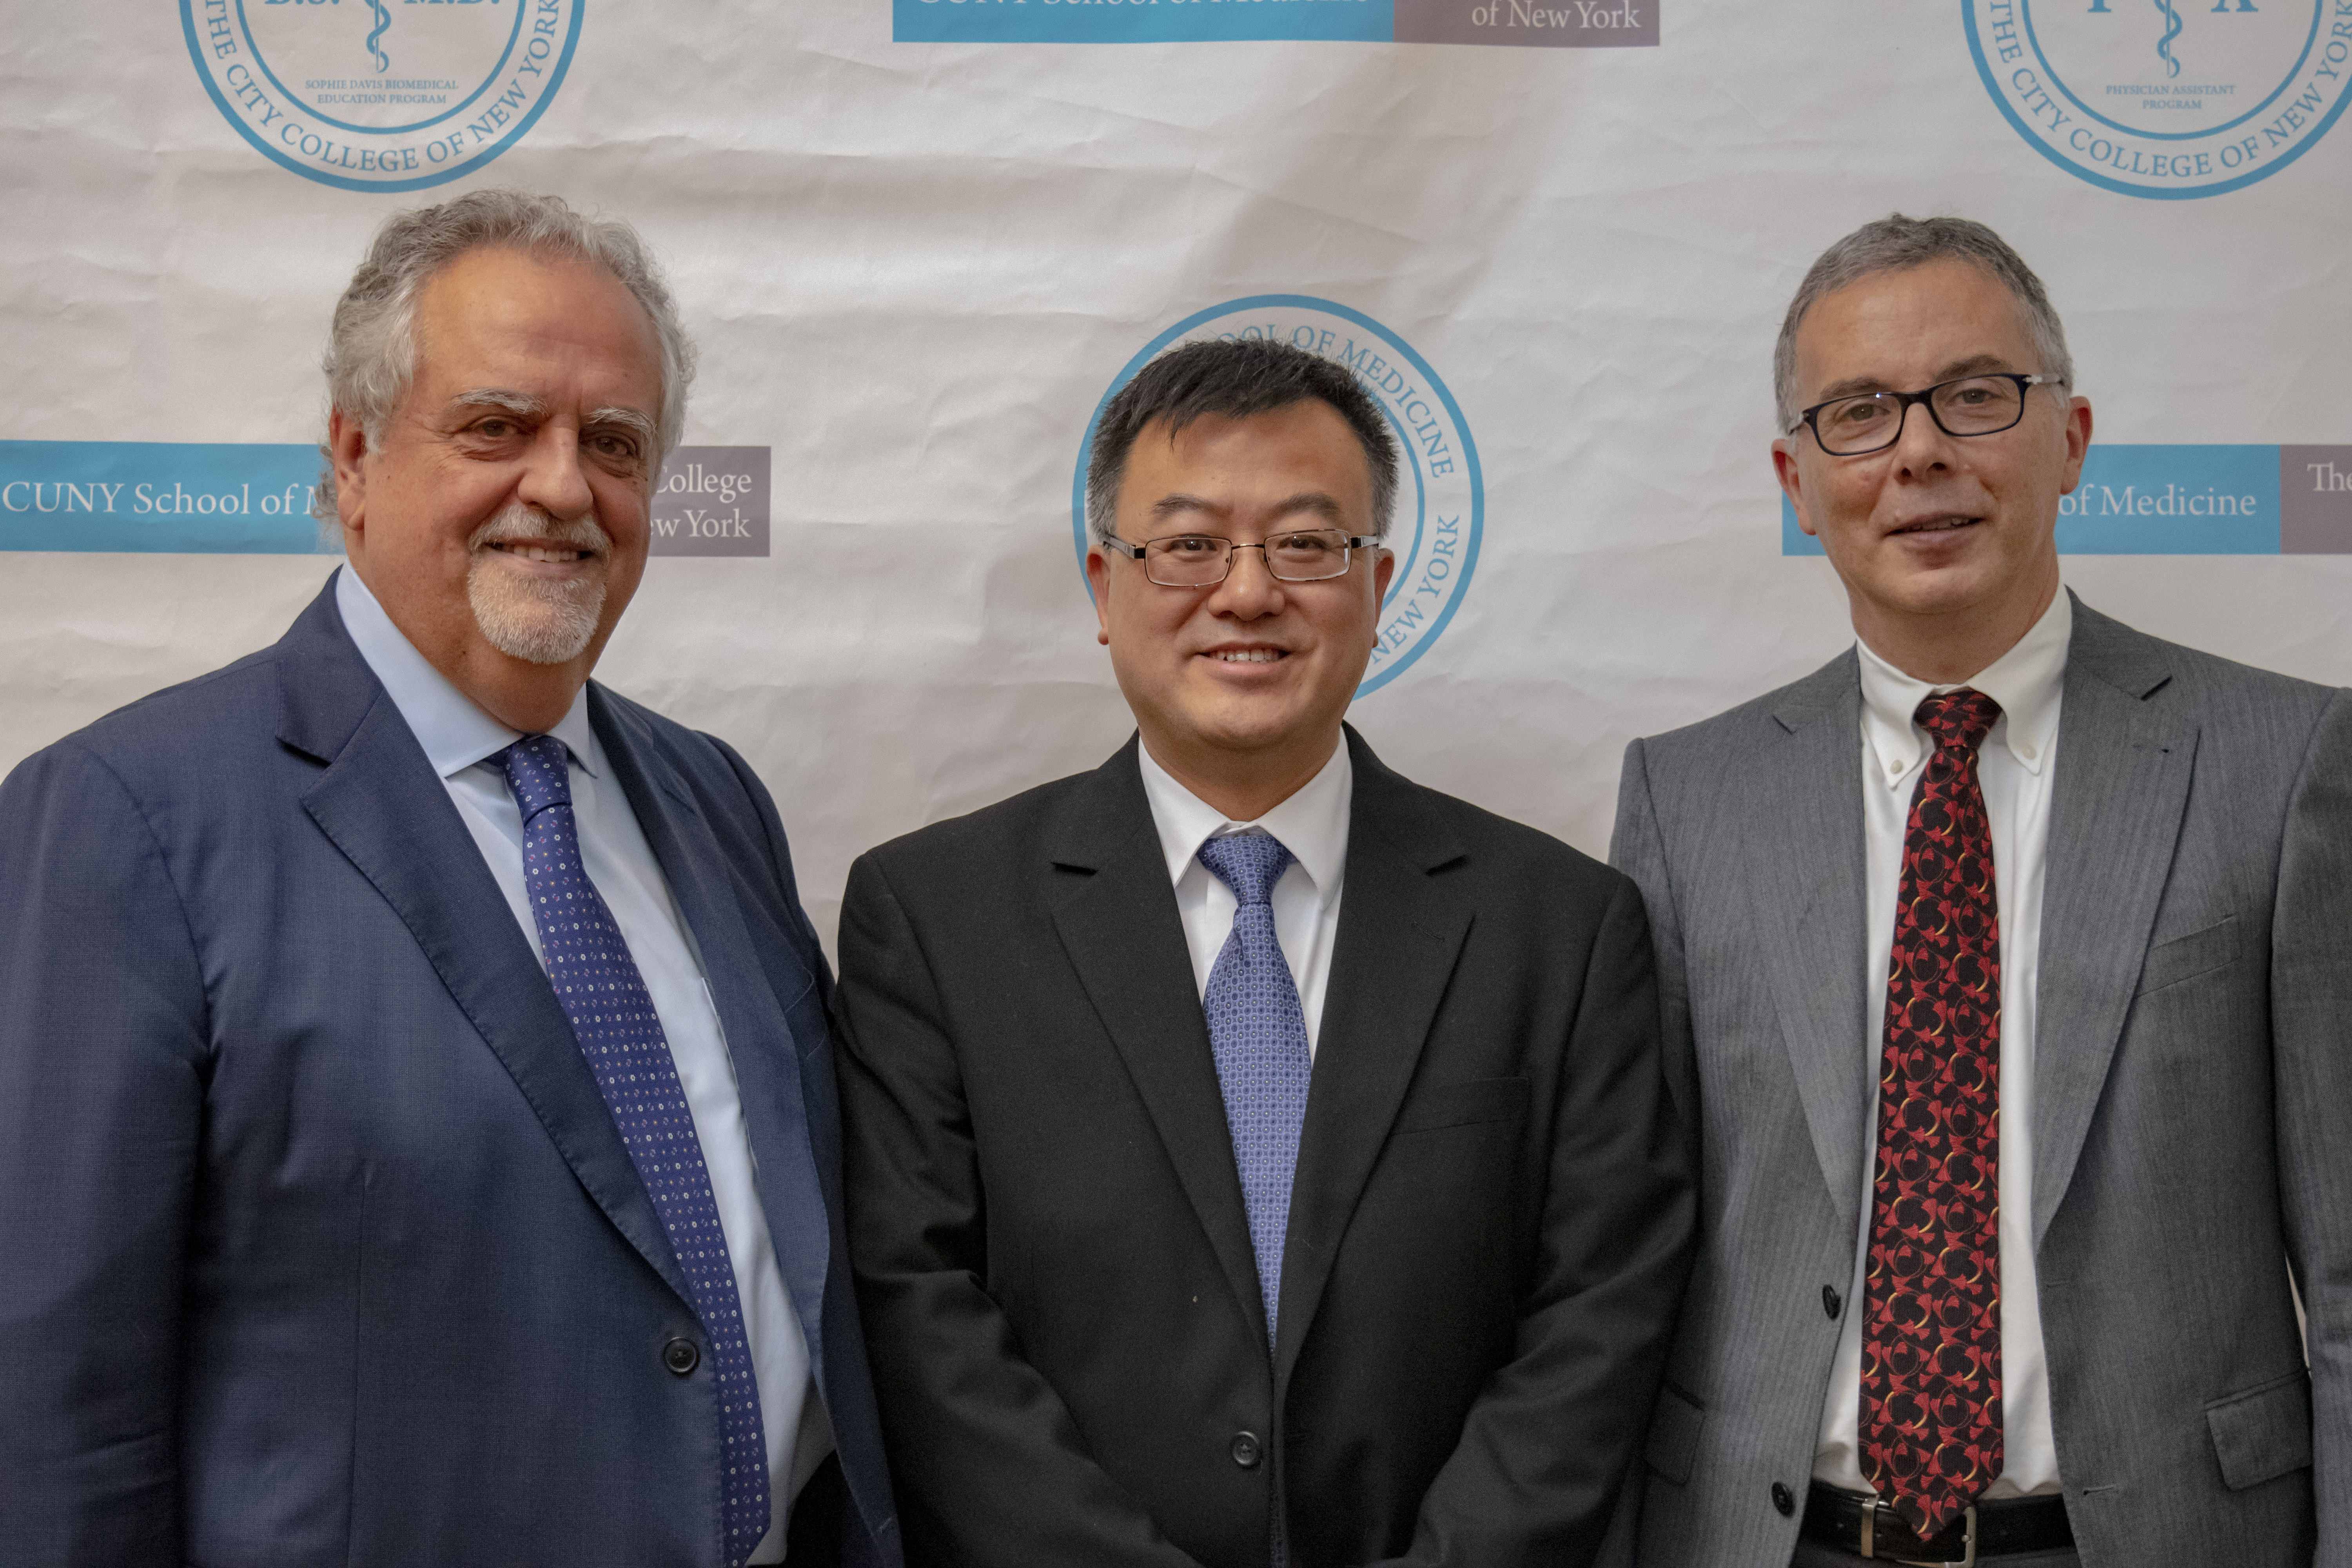 Image of Dean Maurizio Trevisan, Dr. Alan Yao, Provost Tony Liss